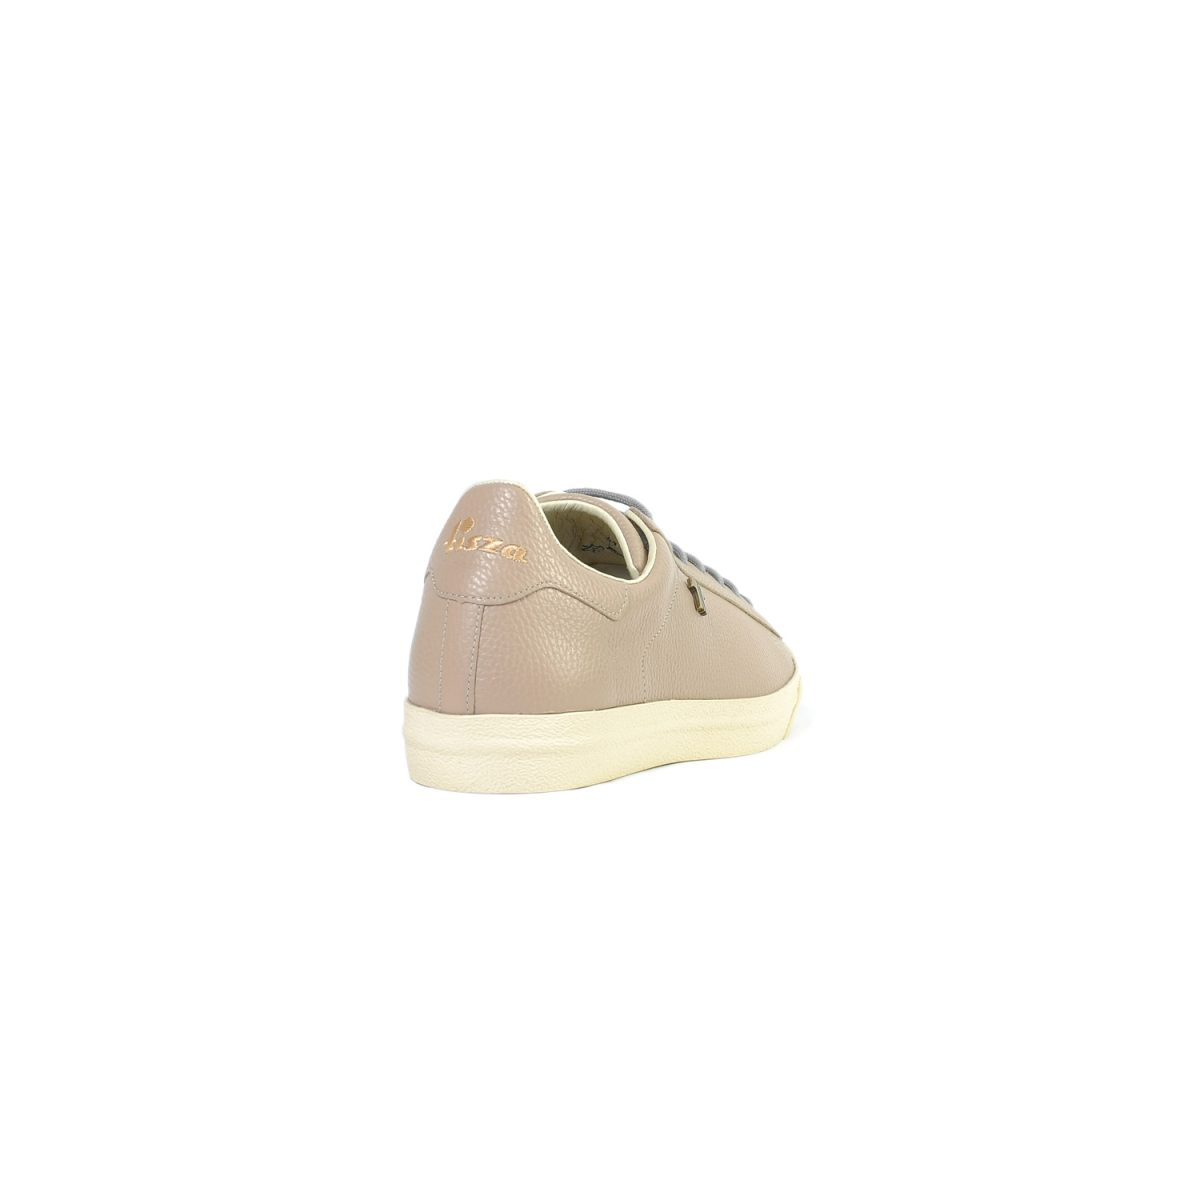 Tisza shoes - Simple - Sand